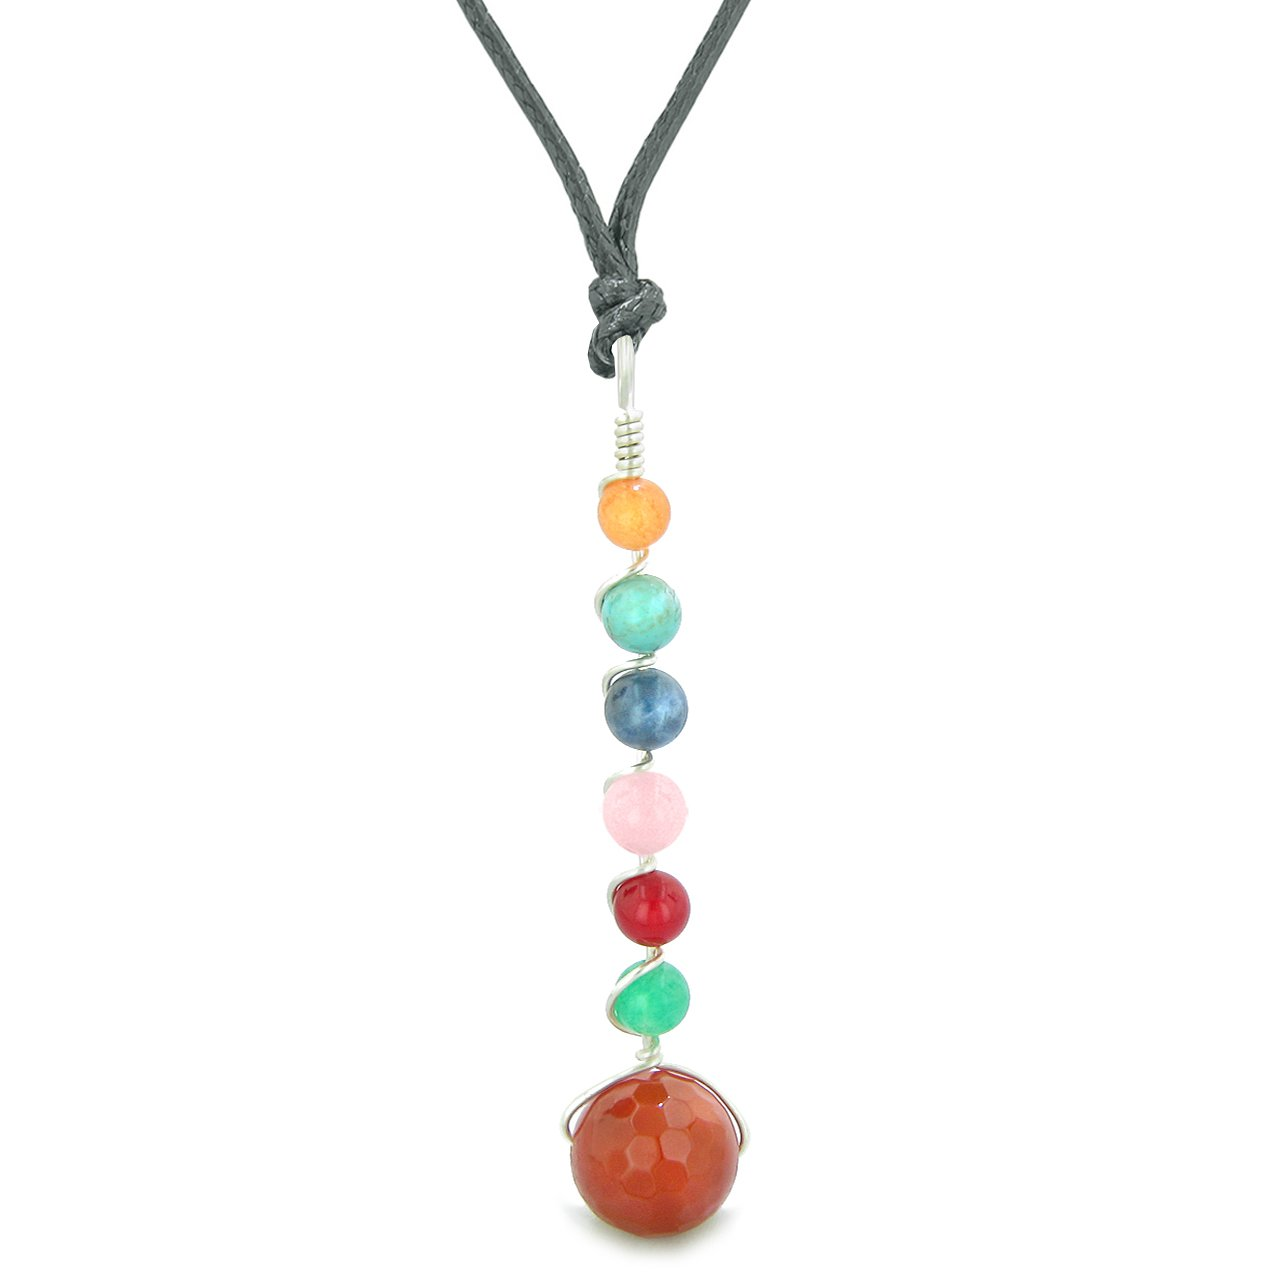 Chakra Wish Bead Amulet Faceted Carnelian Colorful Gemstones Lucky Charm Pendant Adjustable Necklace